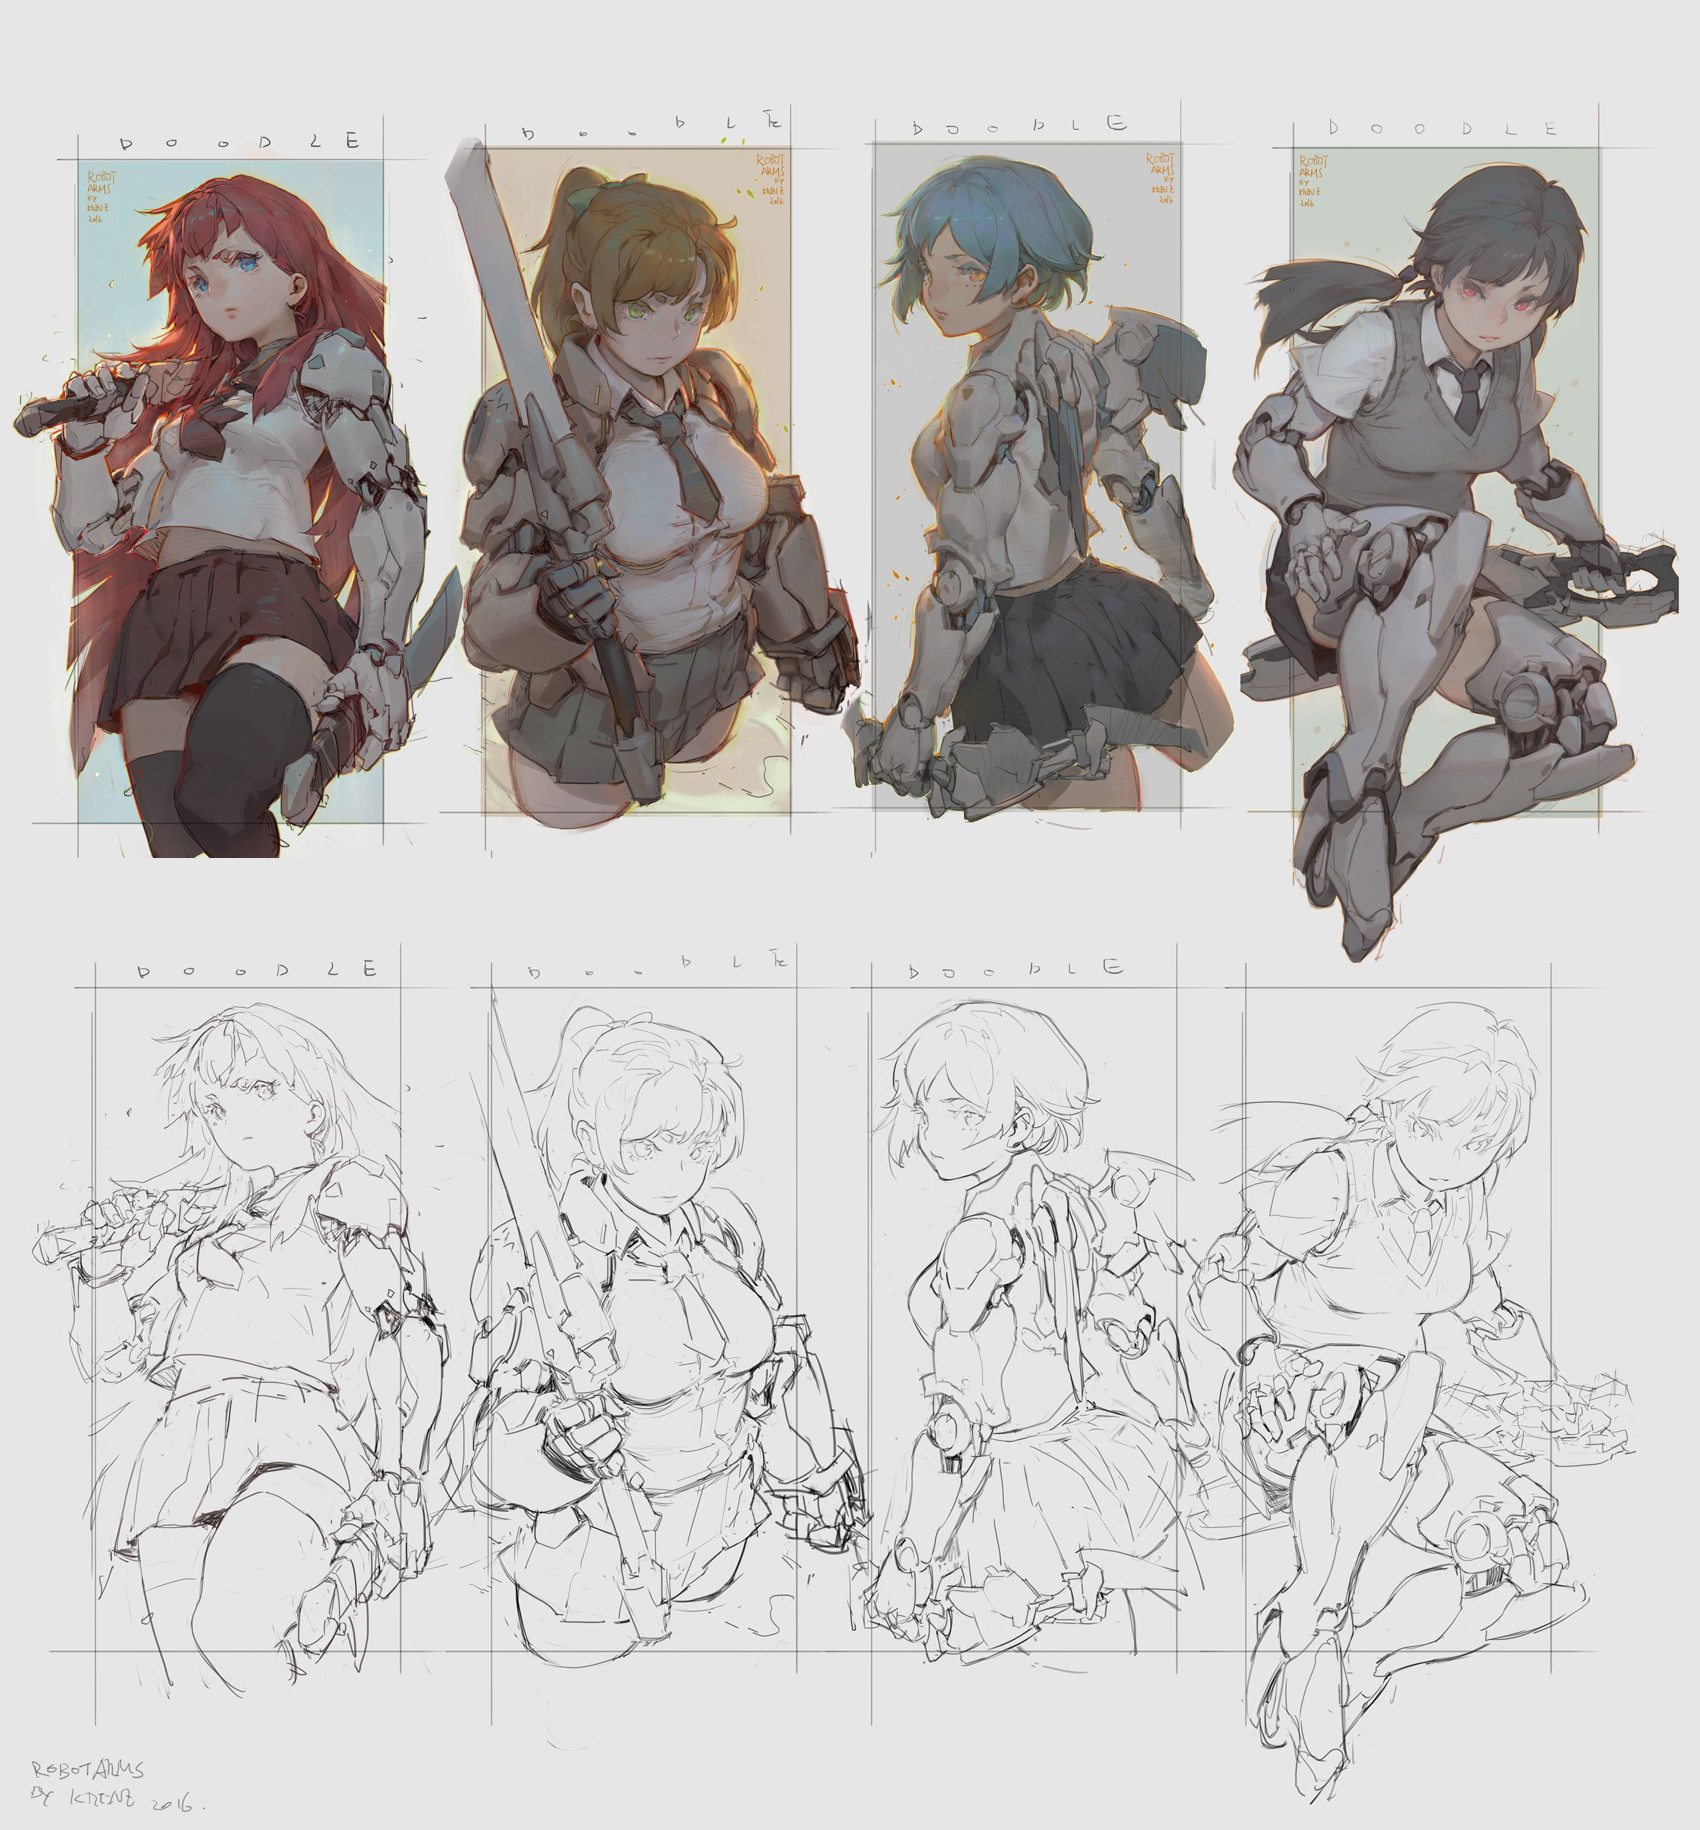 Krenz_Cushart_digital_painting_illustration_robot_girl_doodle